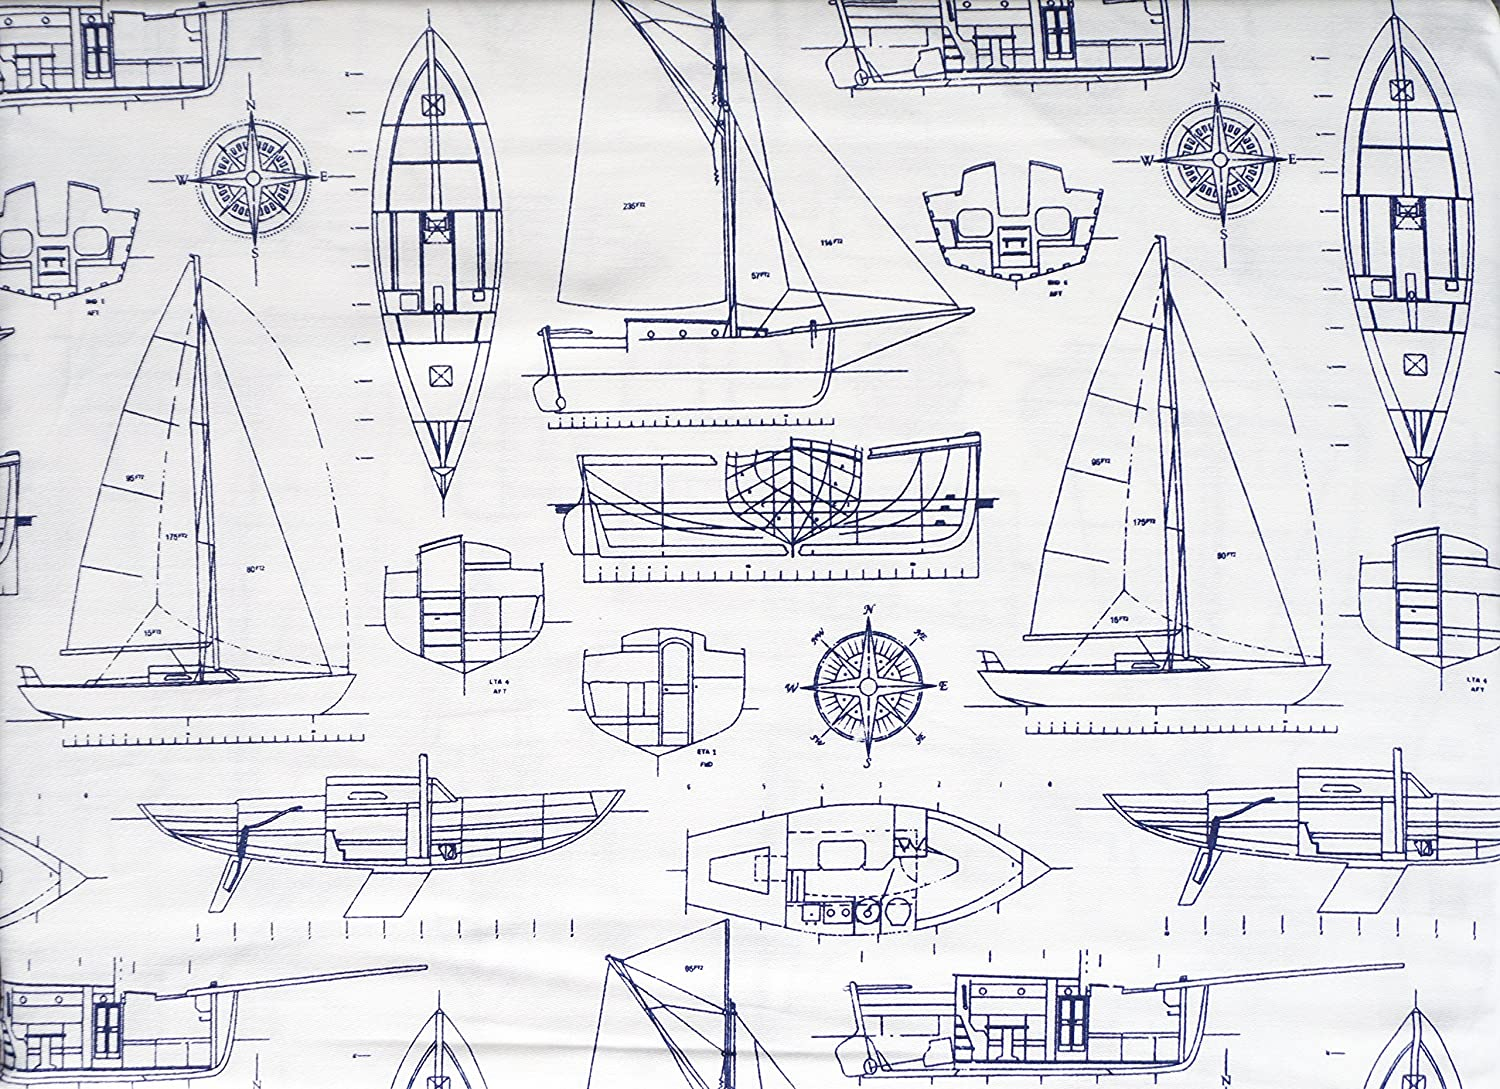 Boats Ships Yachts Diagrams Drawings Blue on White Max Studio Kids 4 Piece Full Size Cotton Sheet Set